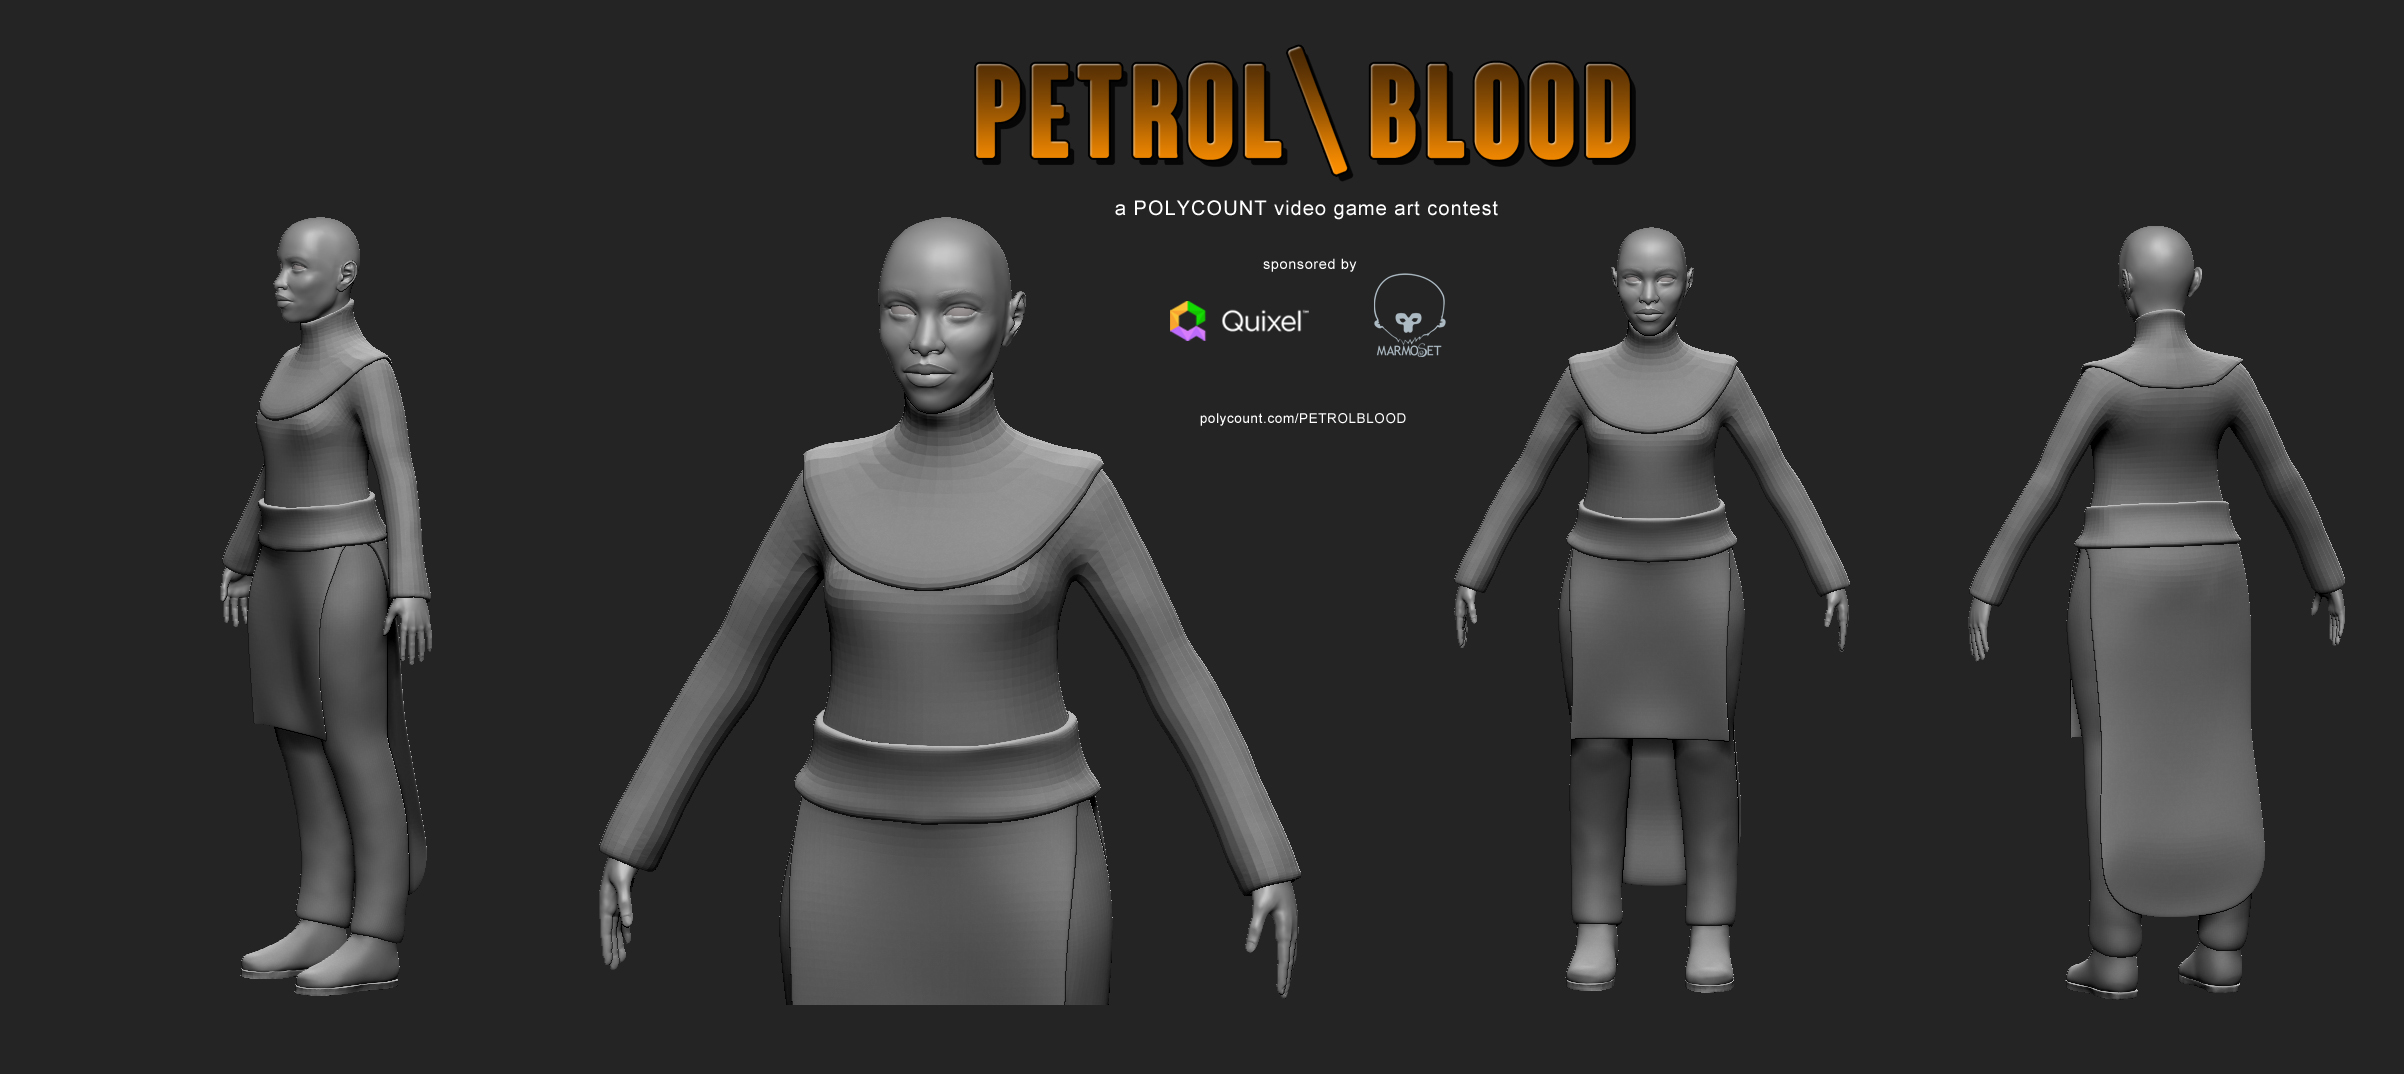 petro_blood_wip02_by_theartistictiger-d7qarxv.jpg